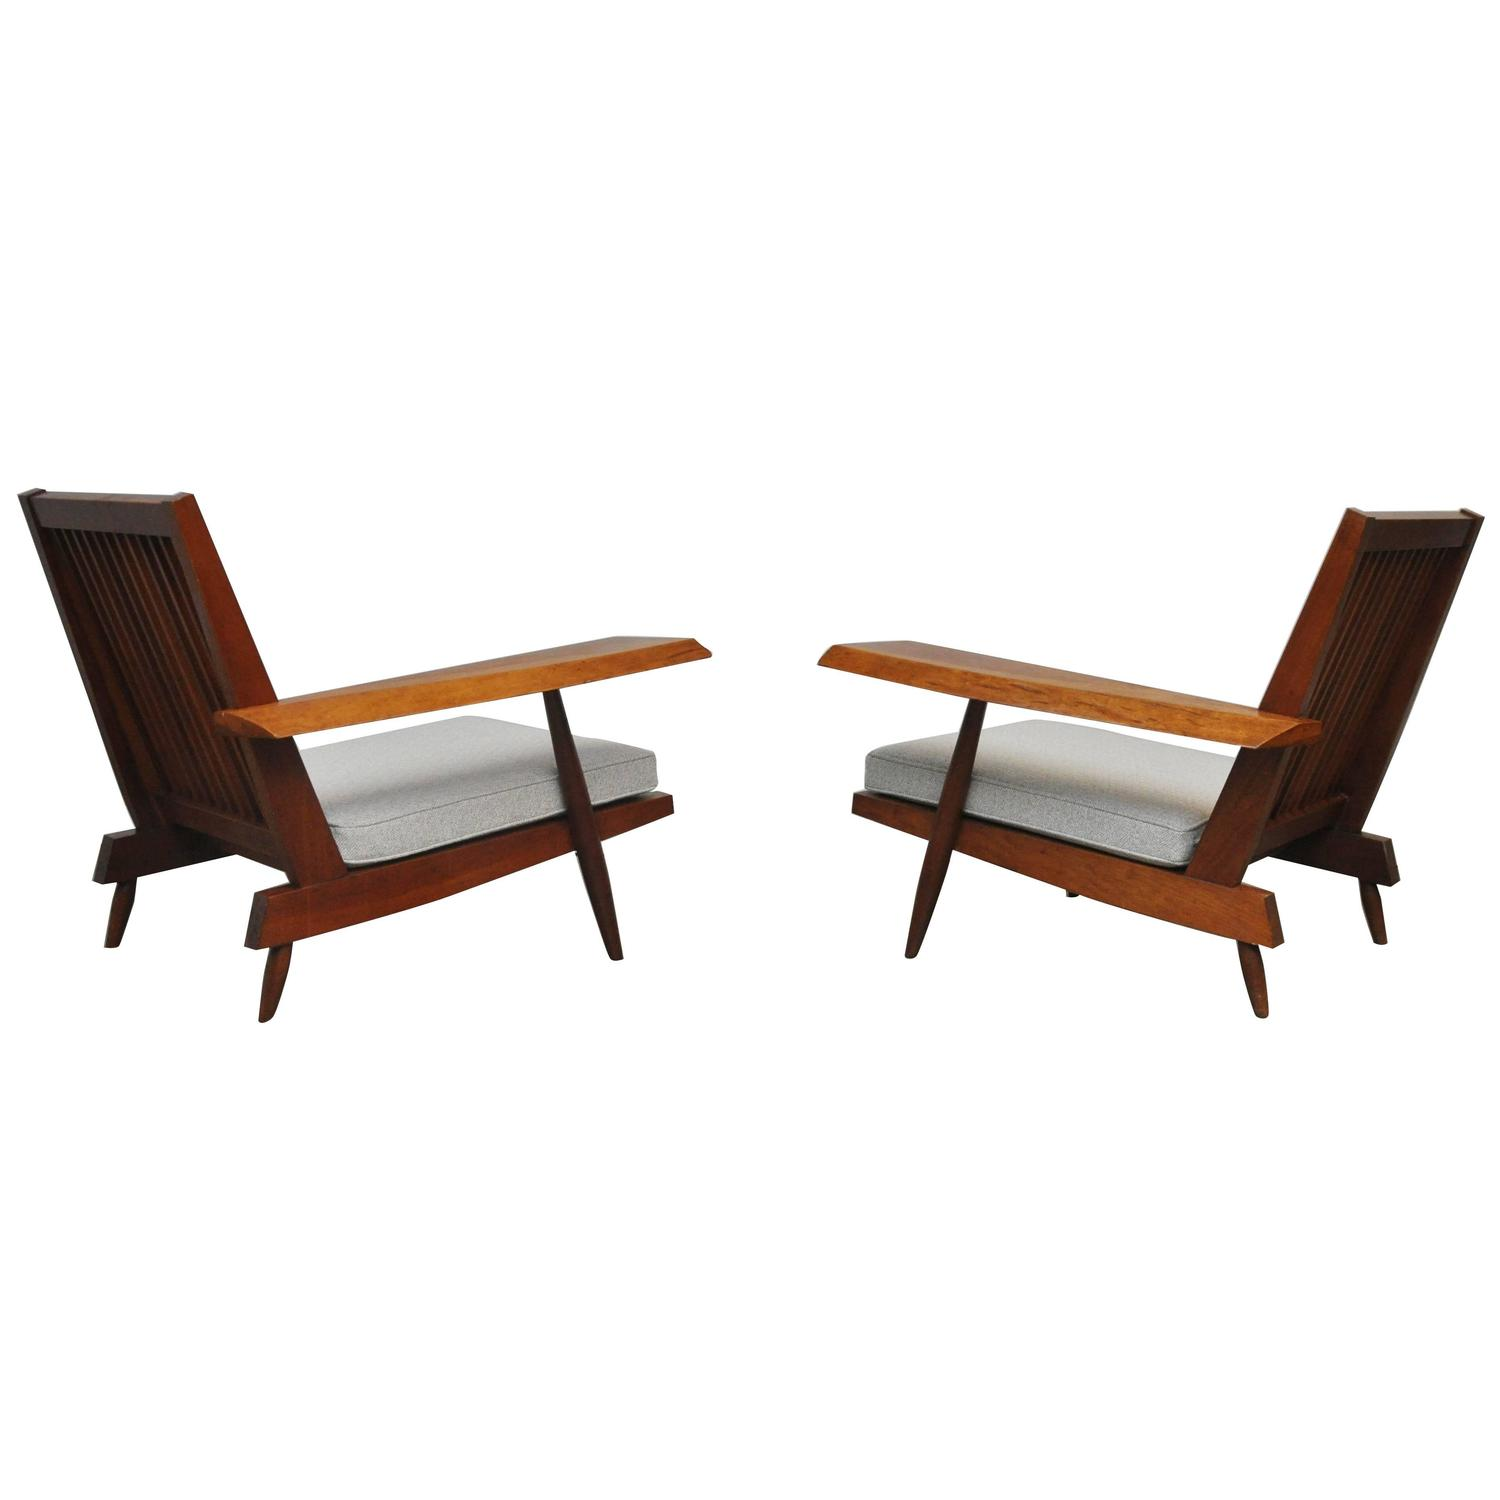 George Nakashima Lounge Chairs 15 For Sale at 1stdibs